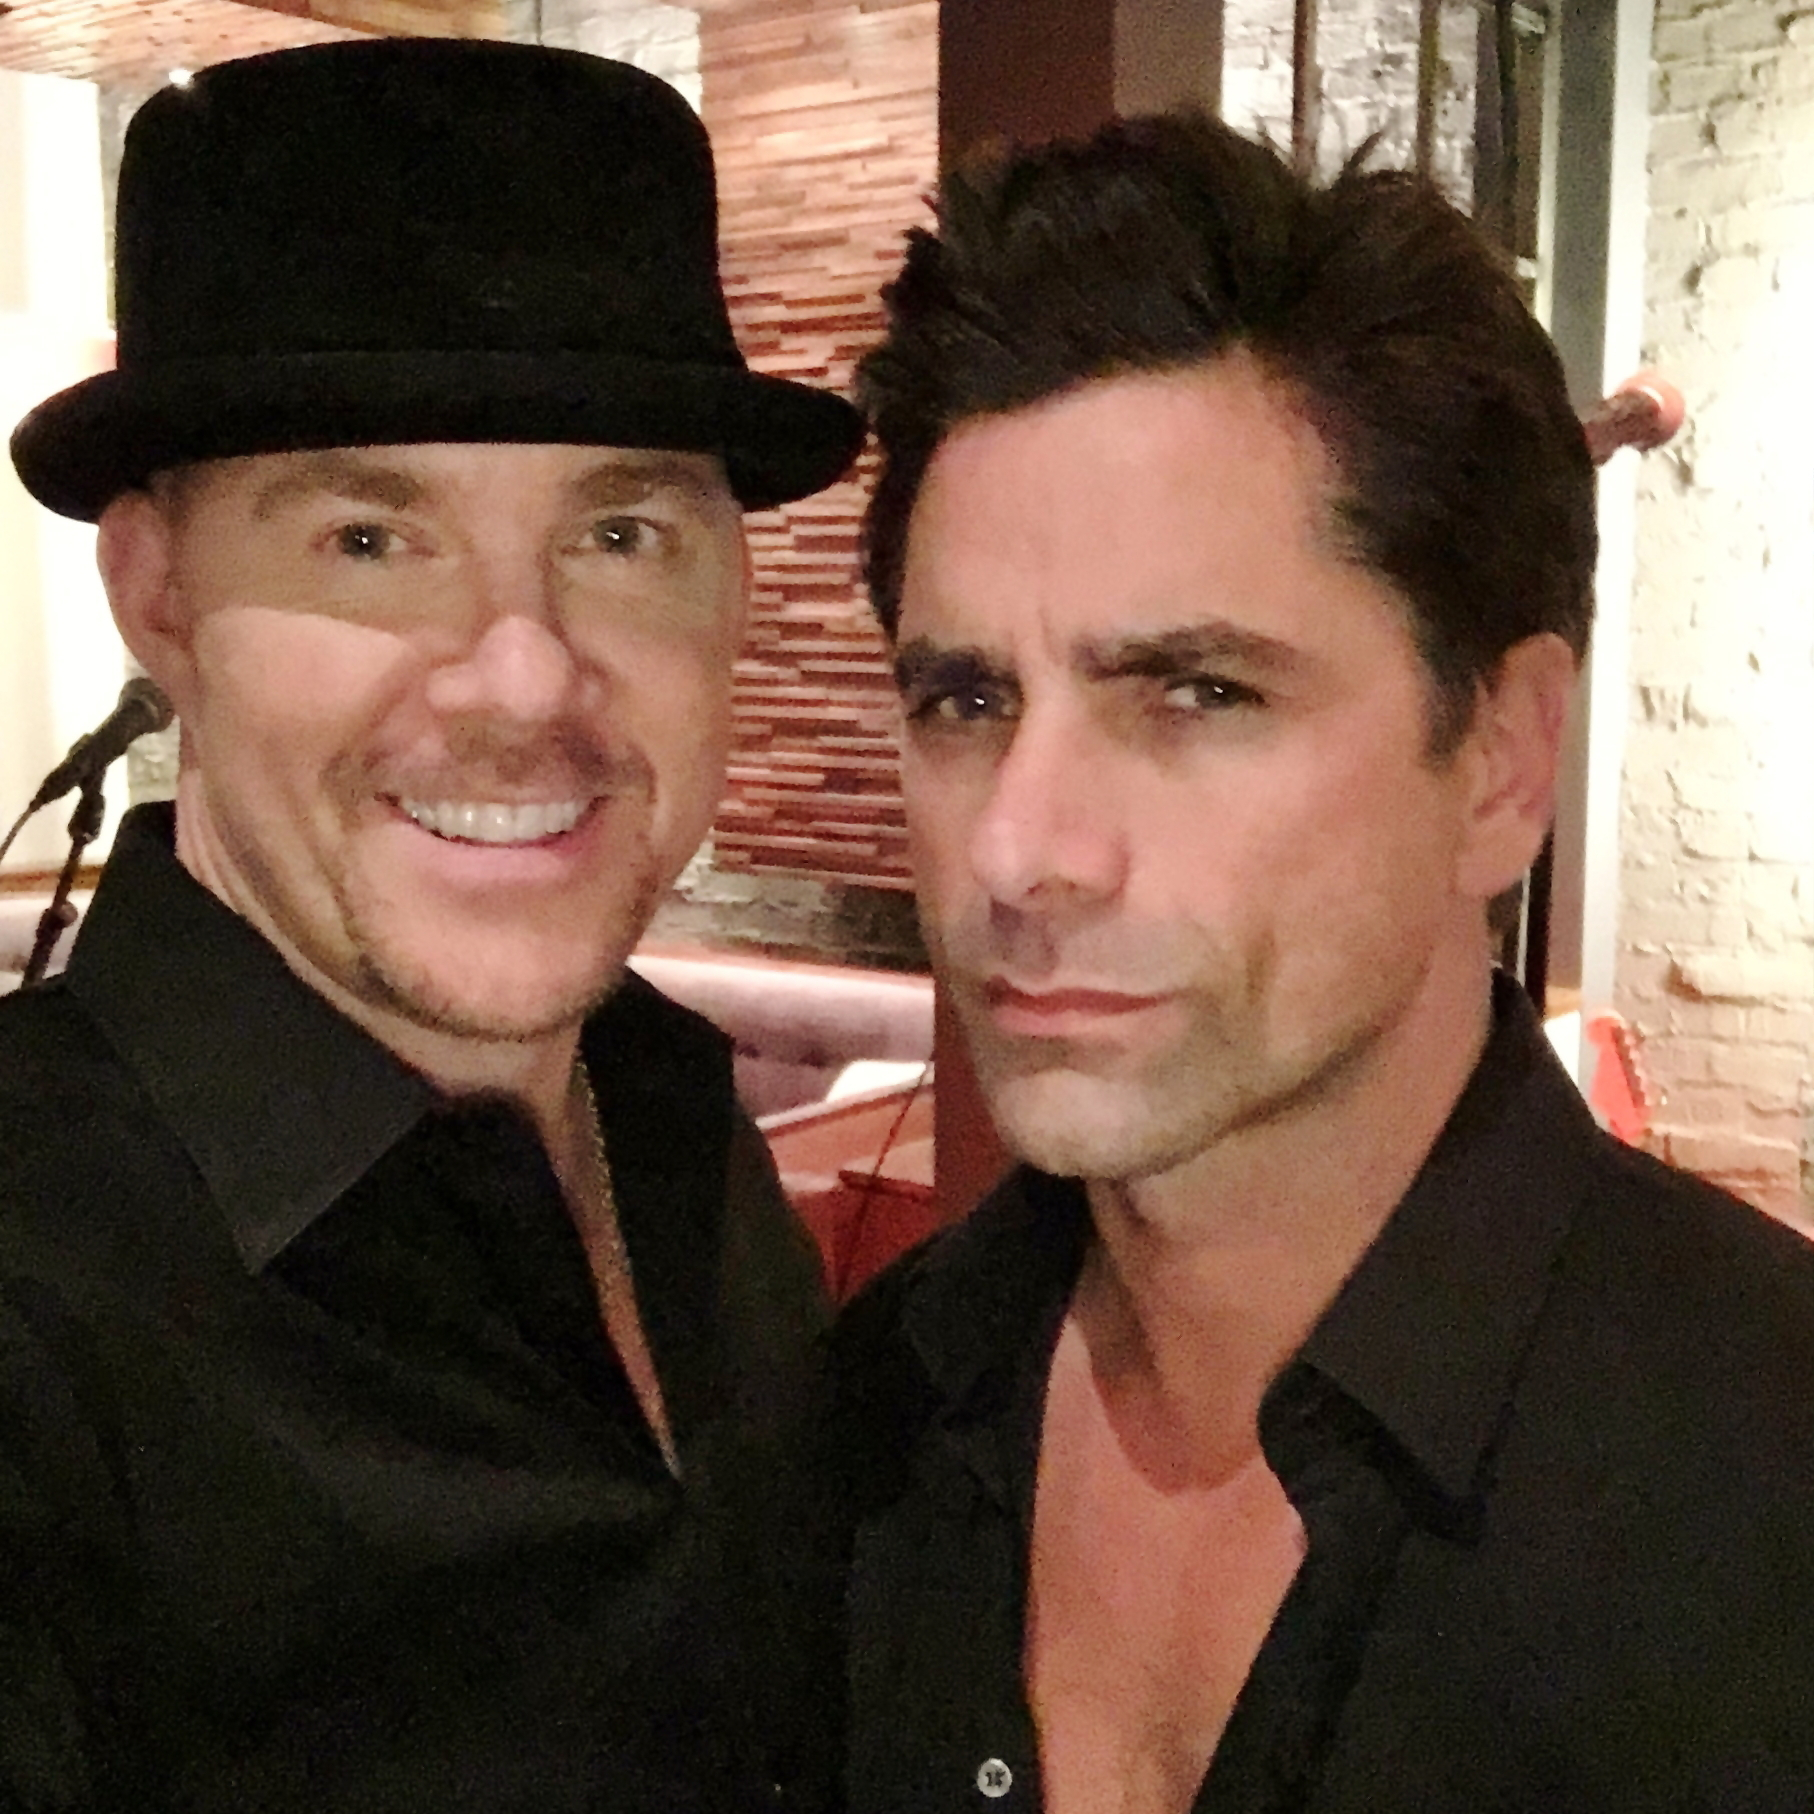 Todd with John Stamos